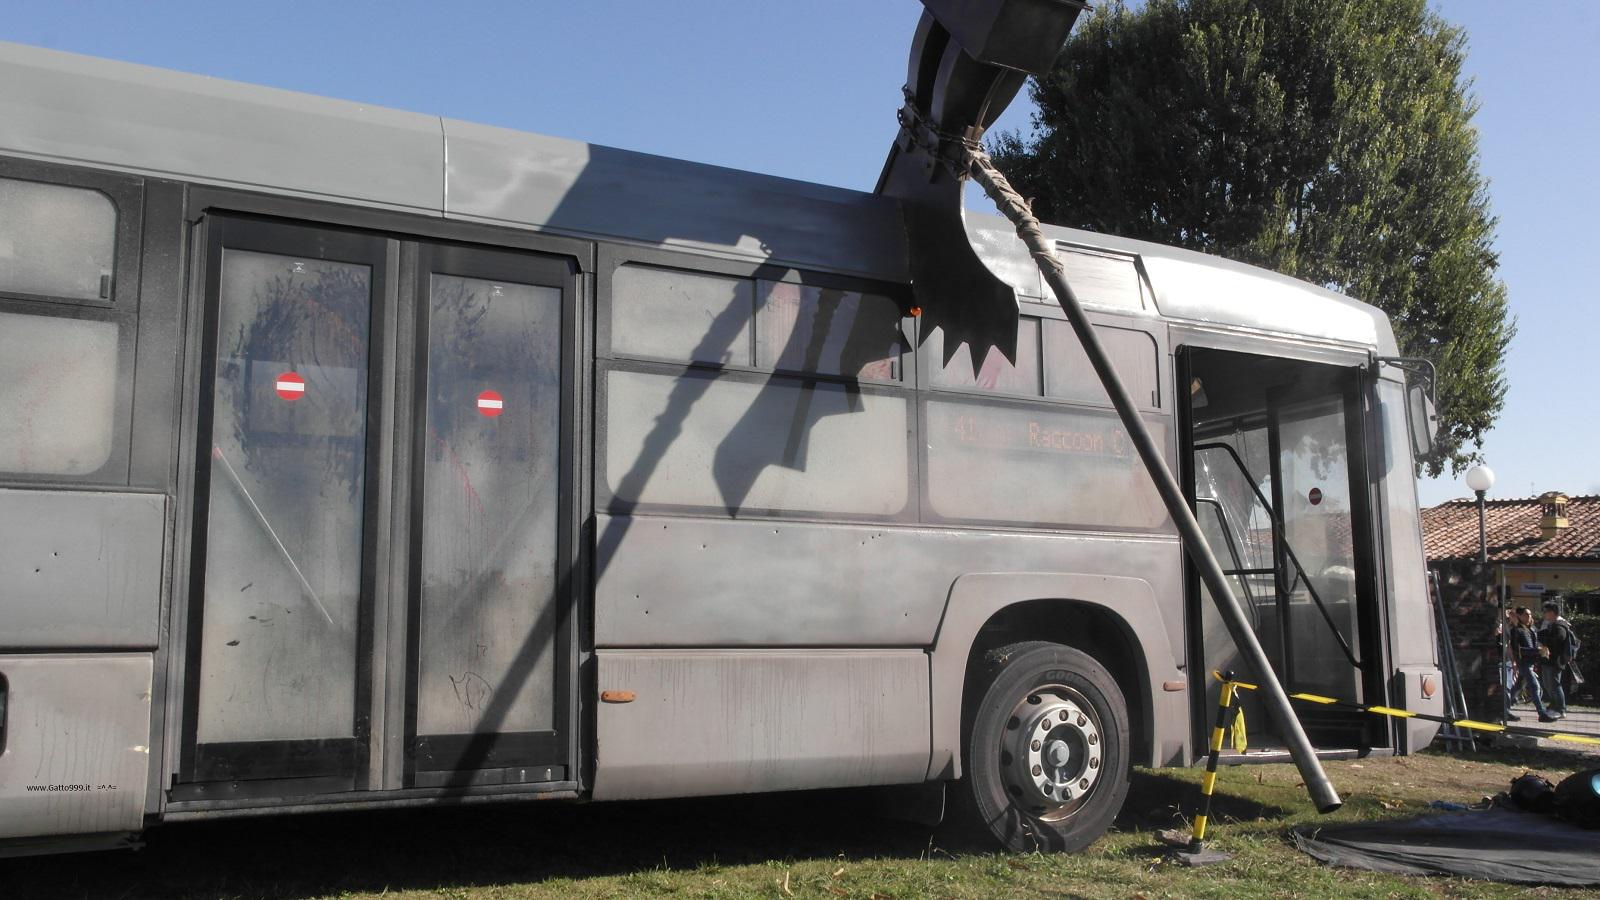 Lucca Comics and Games 2015 - autobus bus destroyed by Resident Evil monster hammer